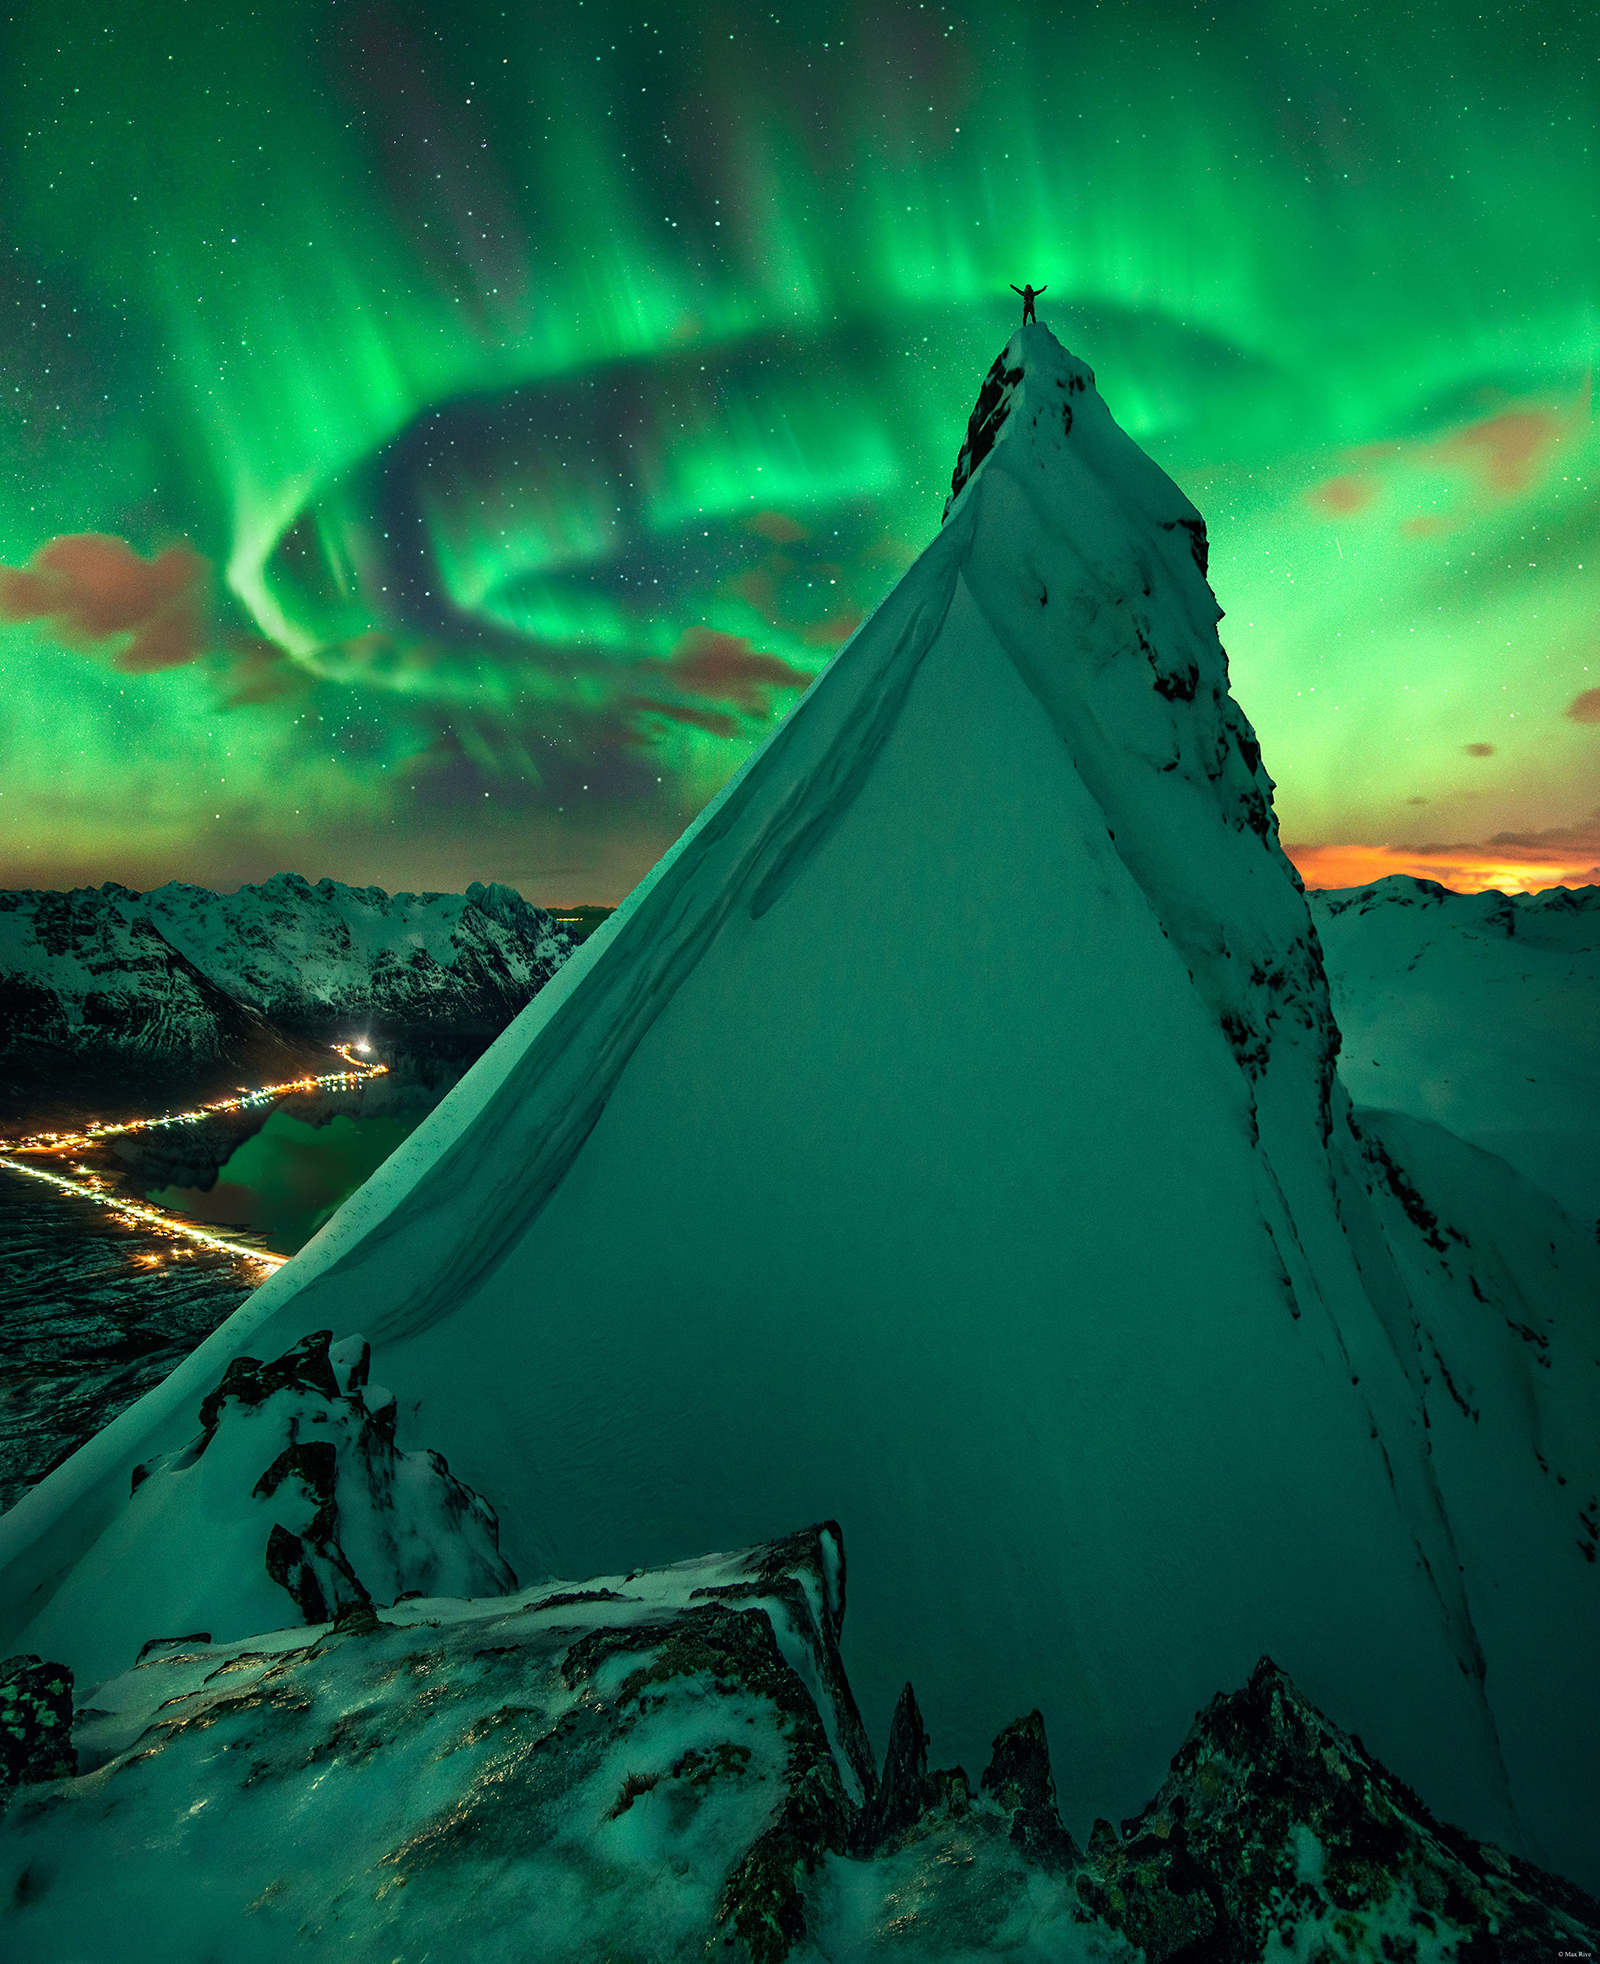 In Green Company: Aurora over Norway